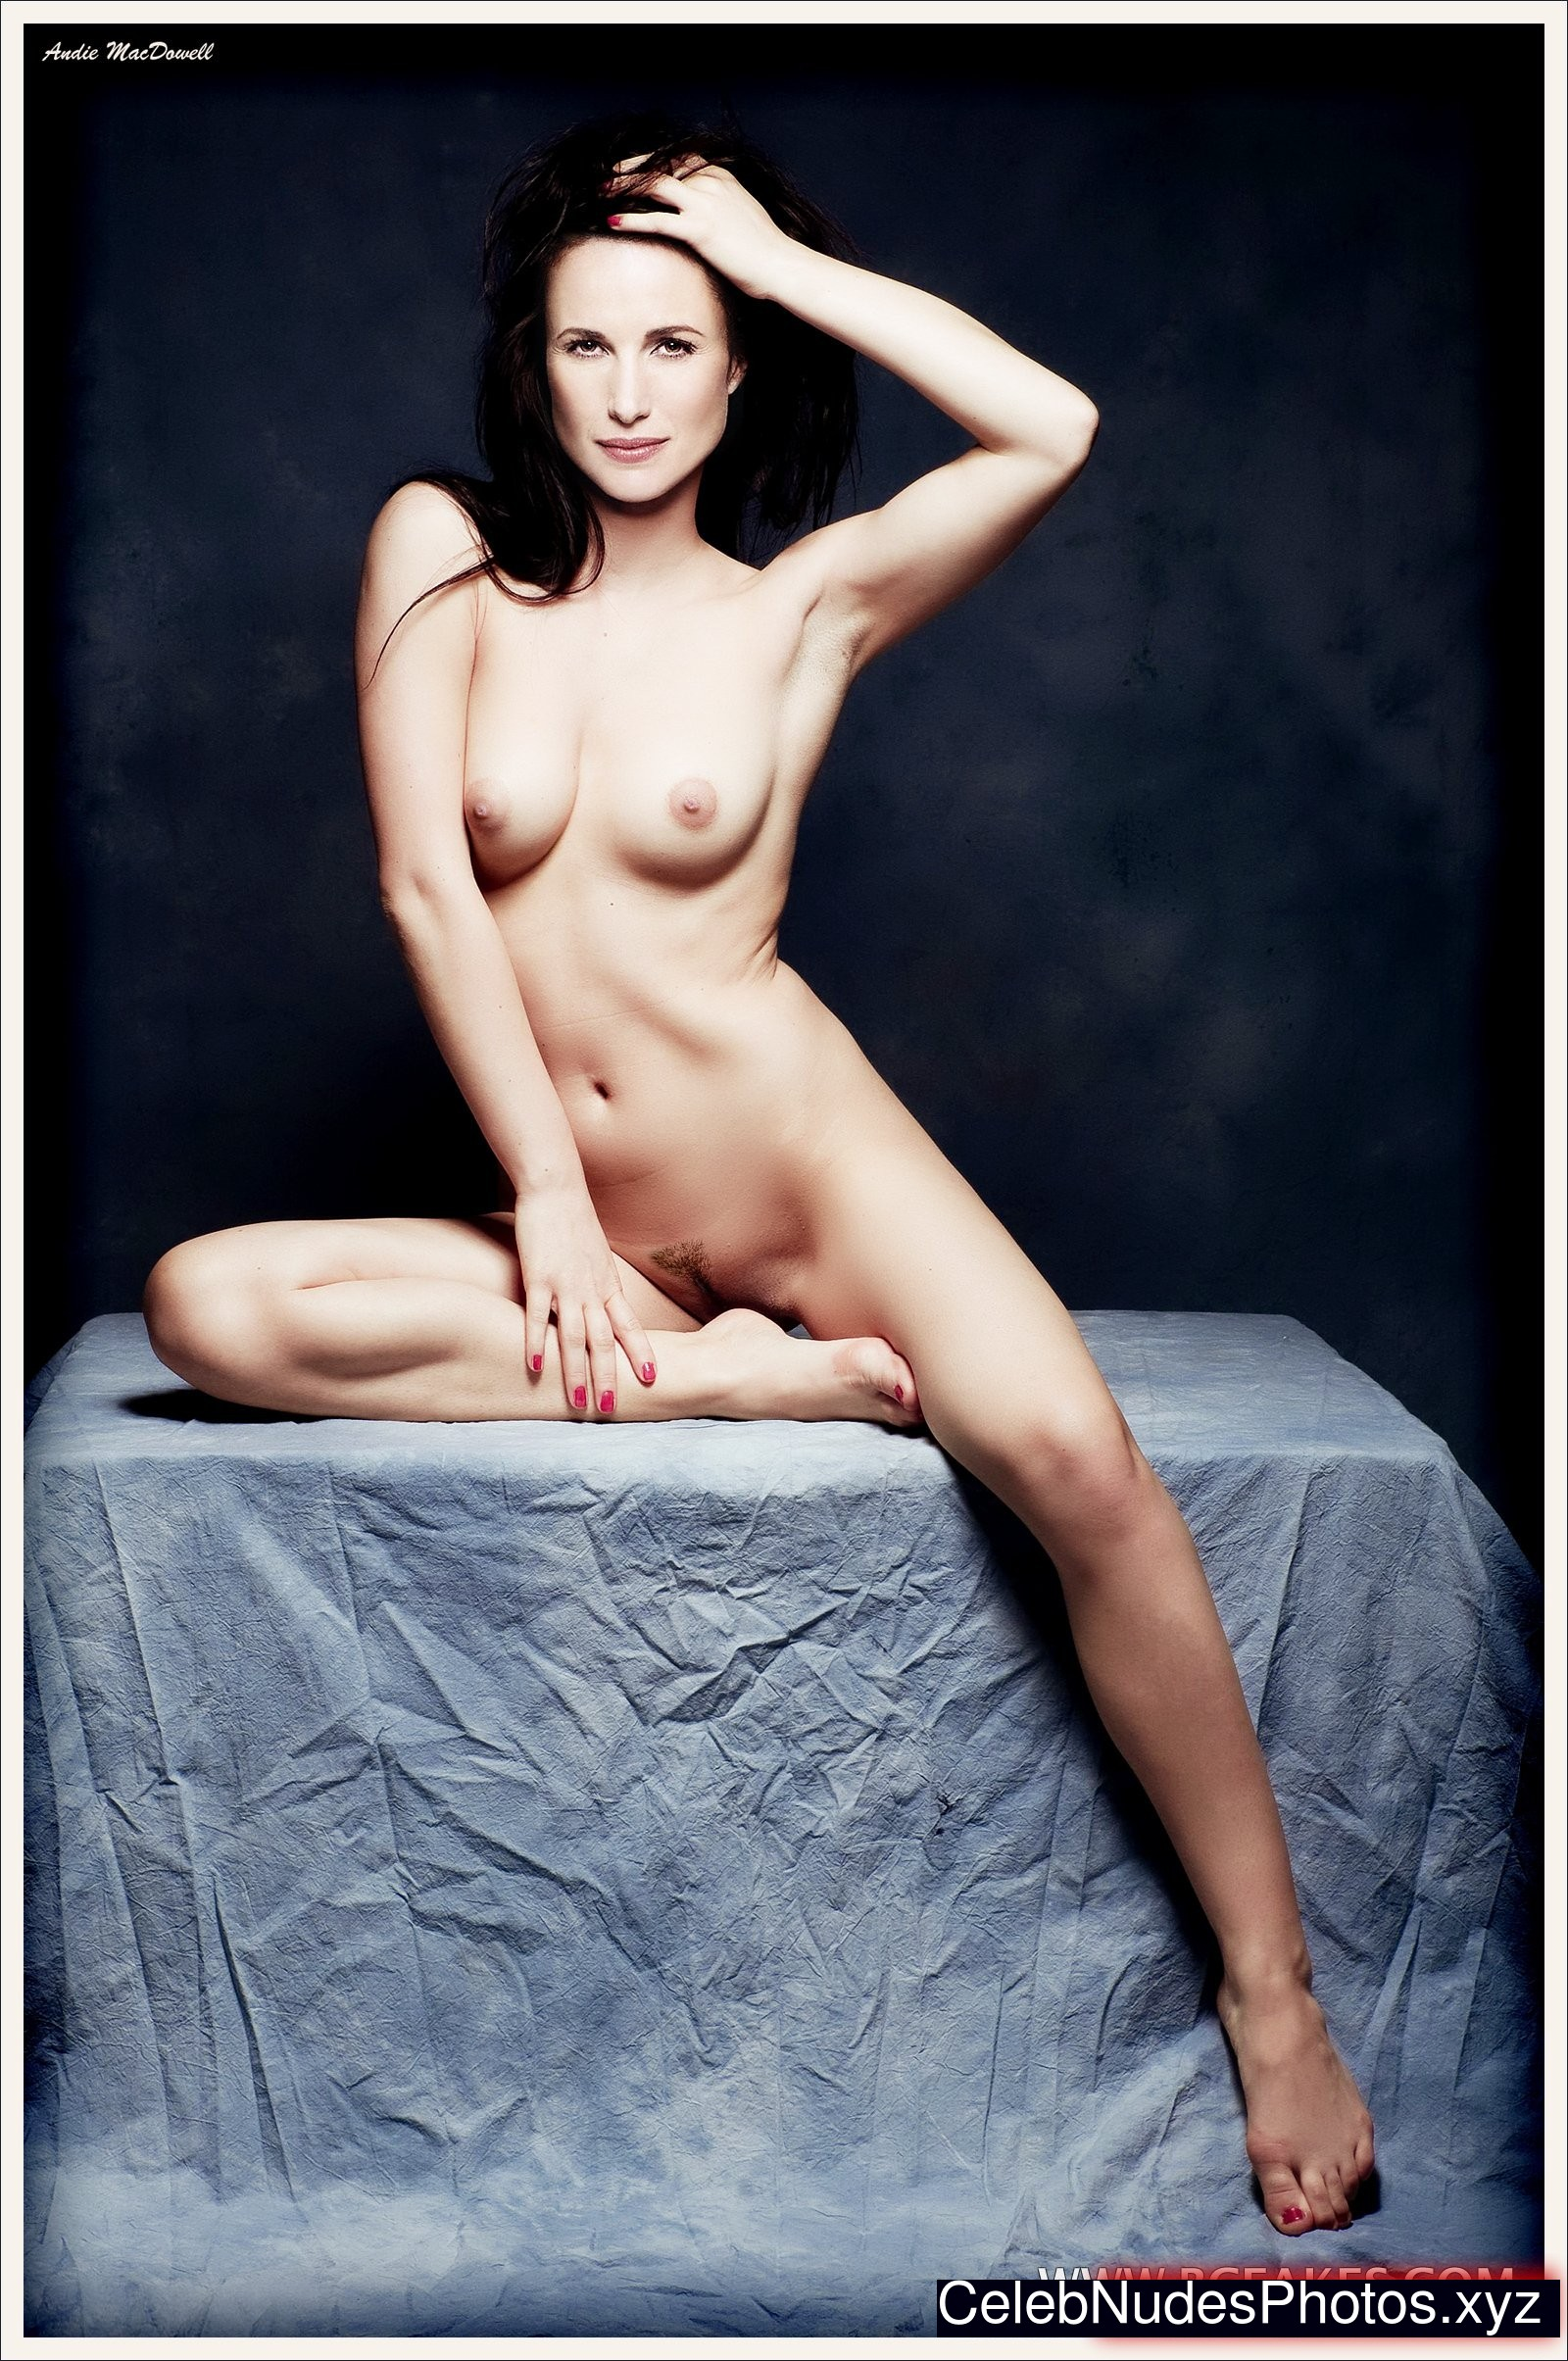 Remarkable, andie macdowell nude have